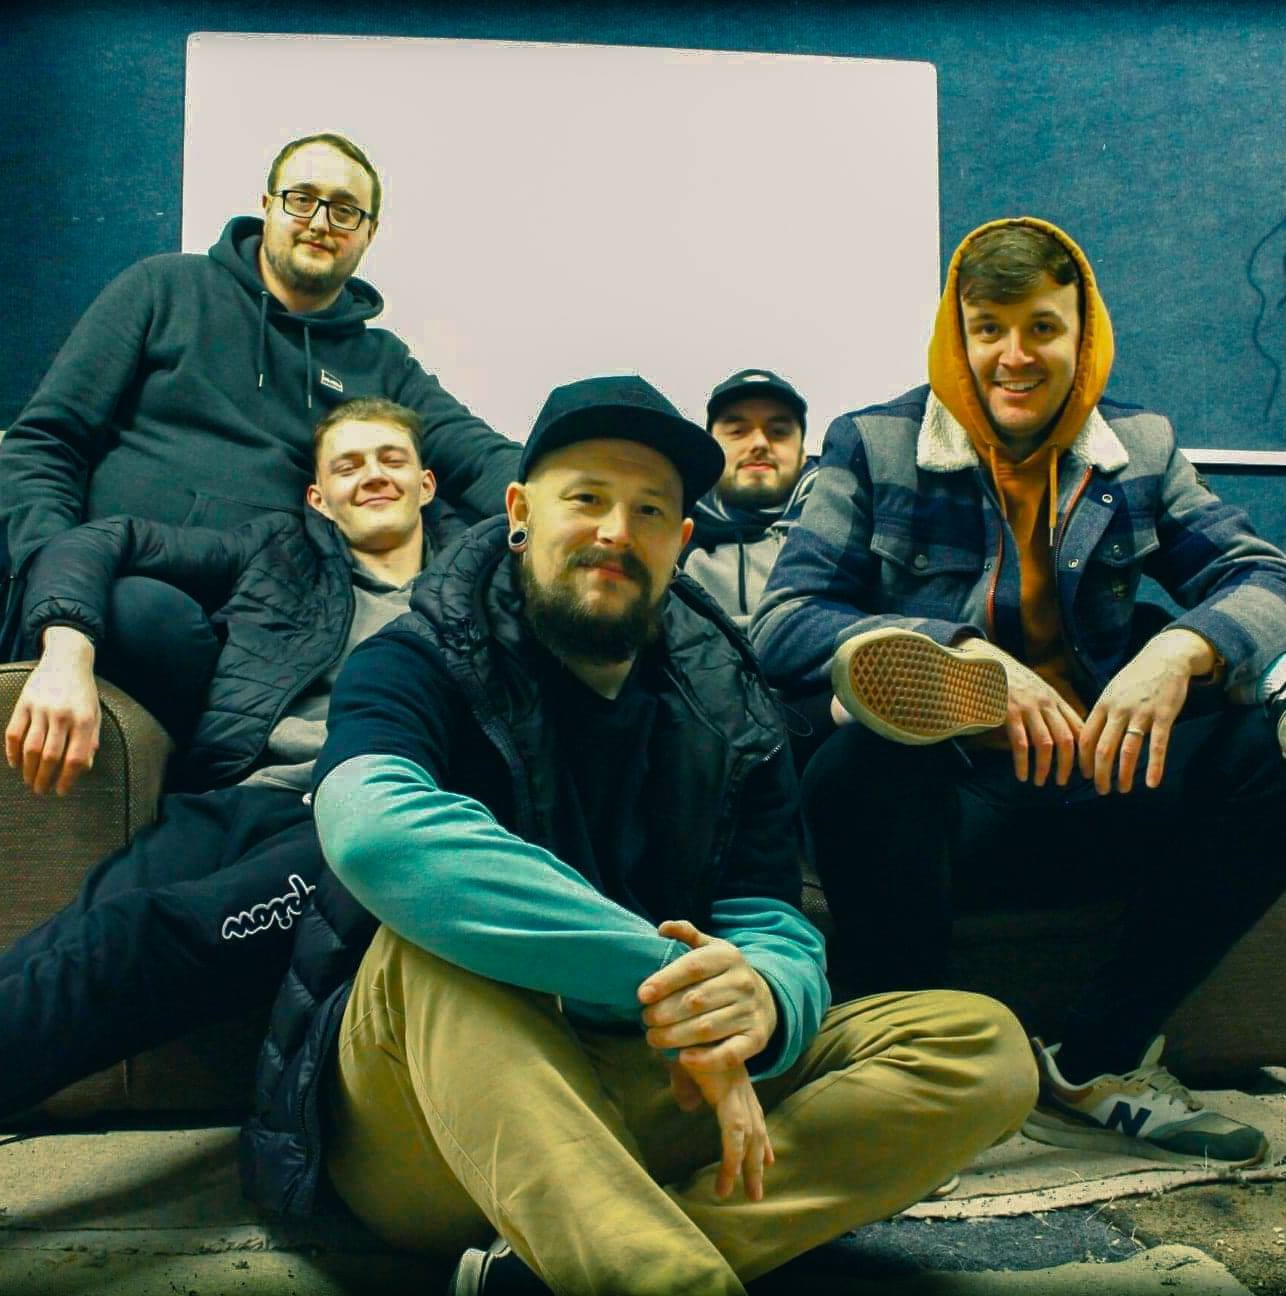 Carlisle band, From Here on Out, defy Covid to produce music